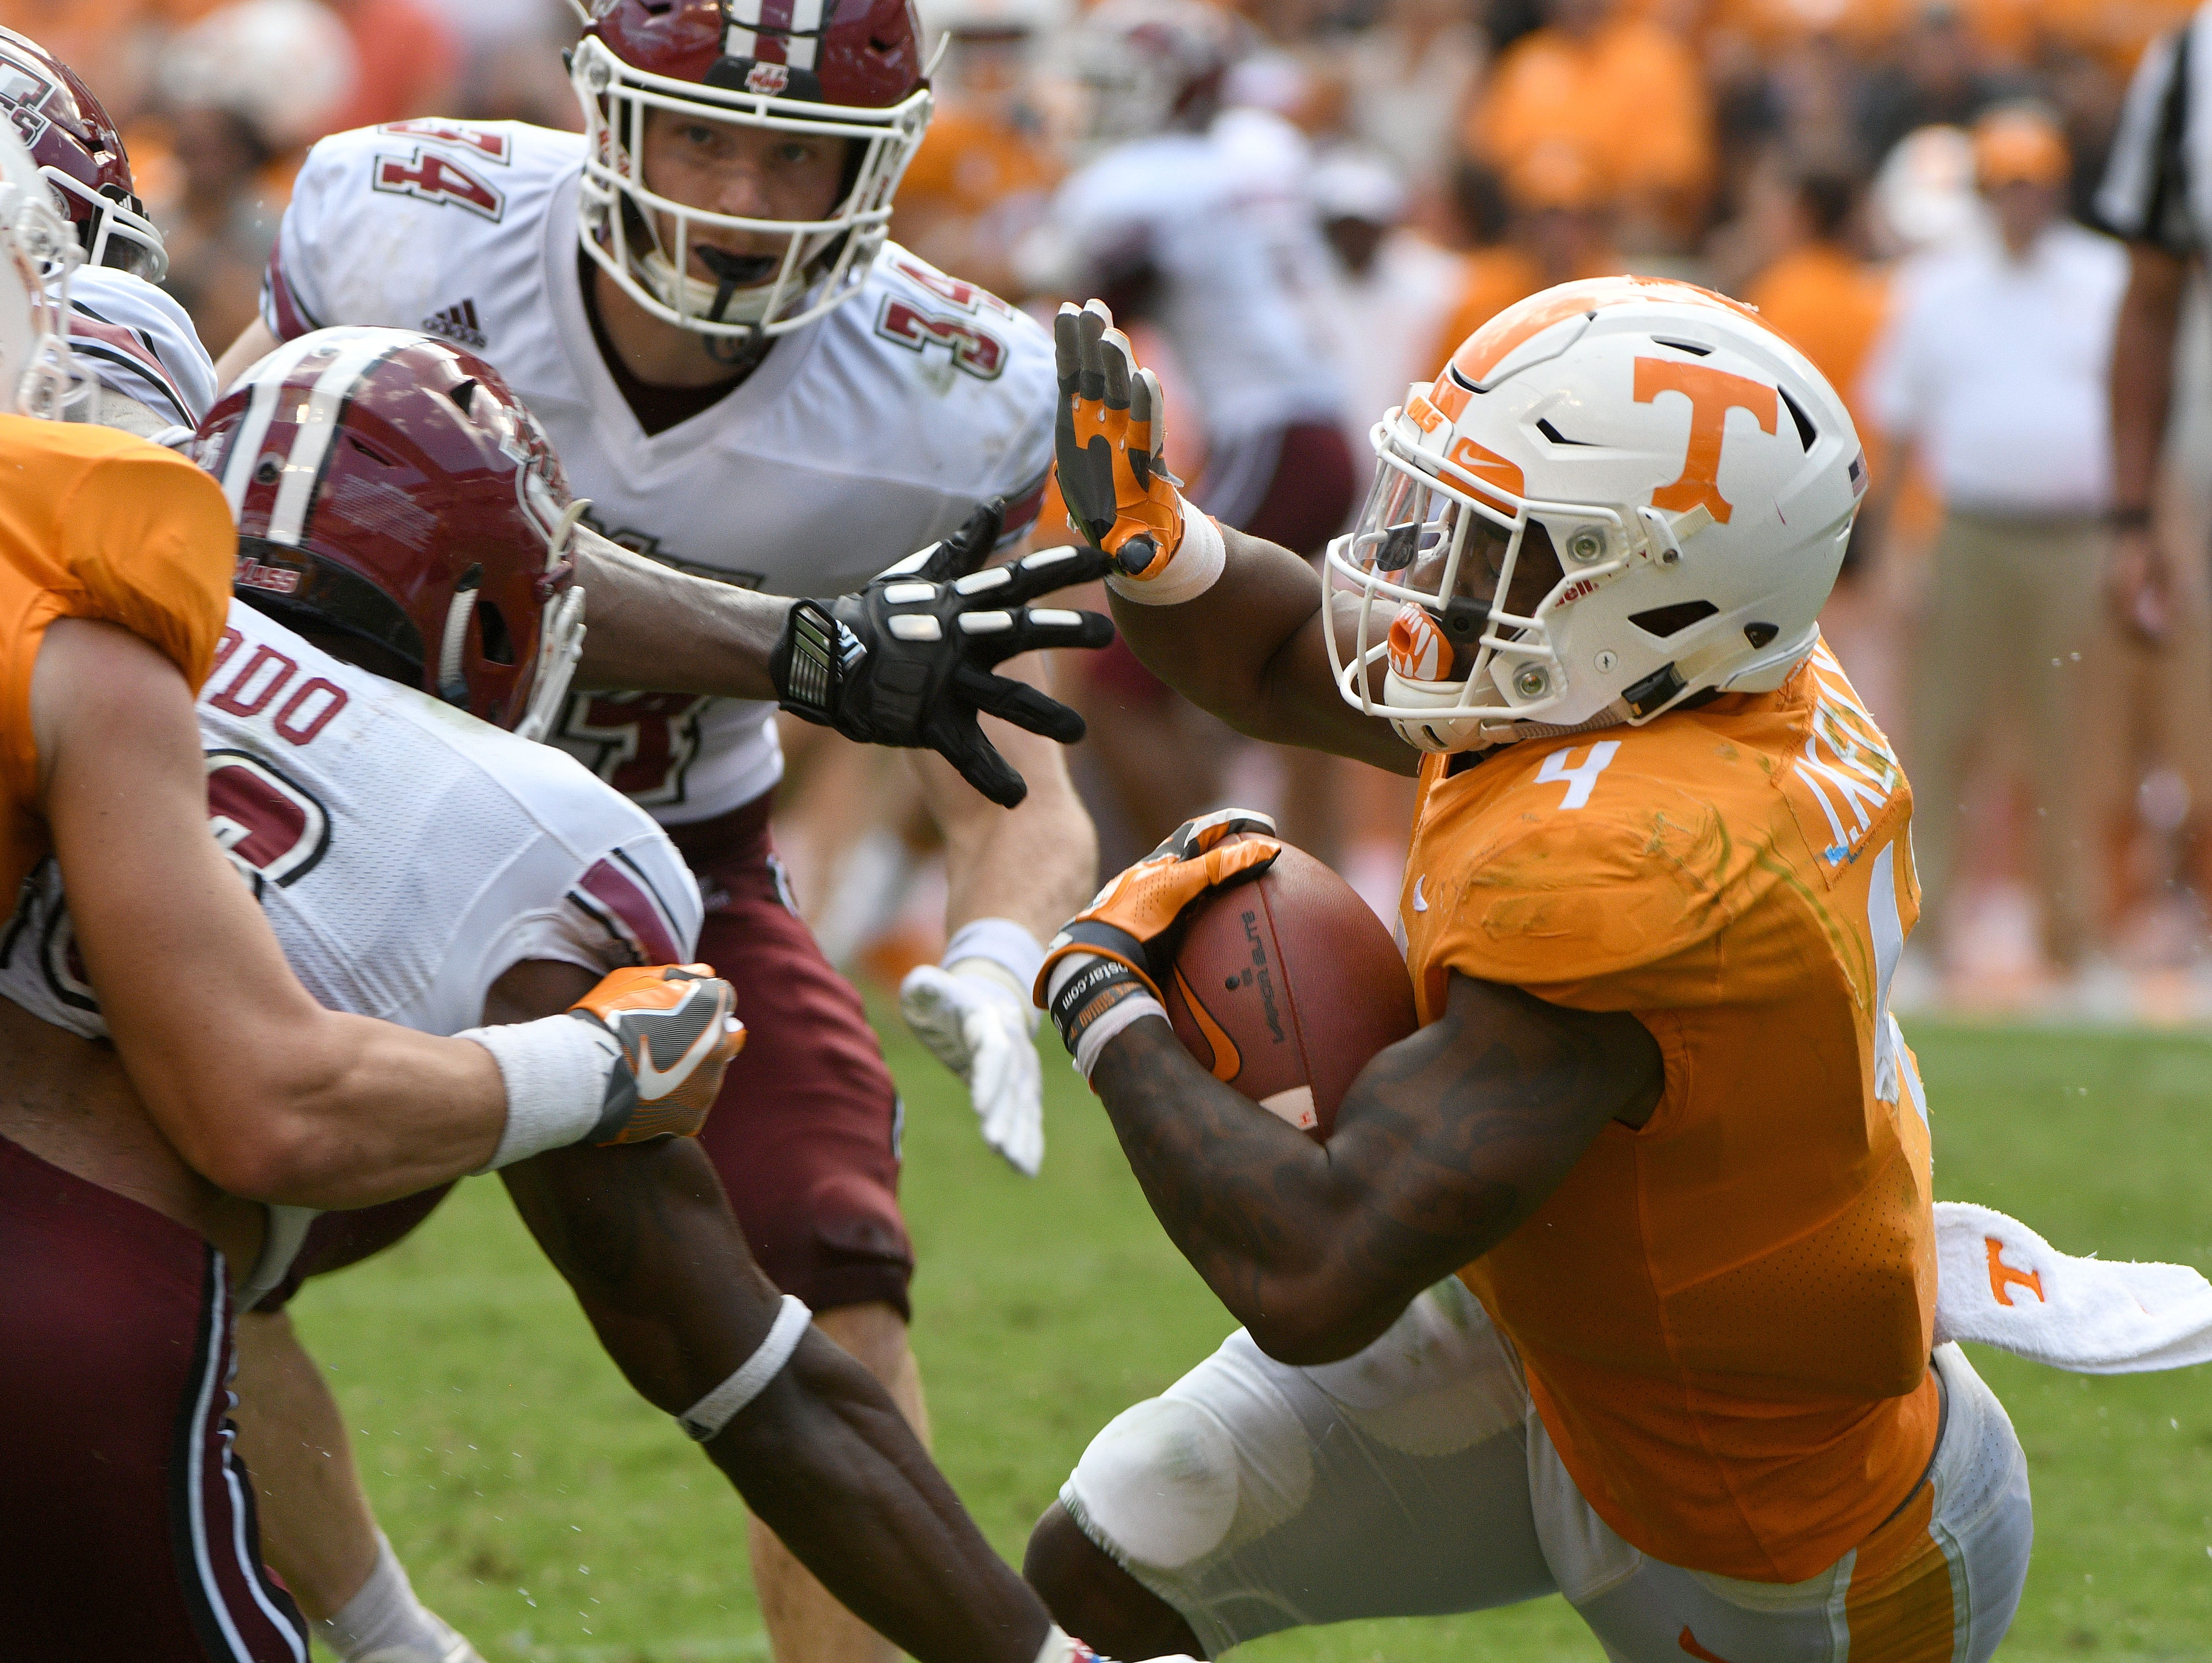 Tennessee running back John Kelly (4) during the second half of their 17-13 win over UMass Minutemen Saturday, Sep. 23, 2017 at Neyland Stadium in Knoxville, Tenn.